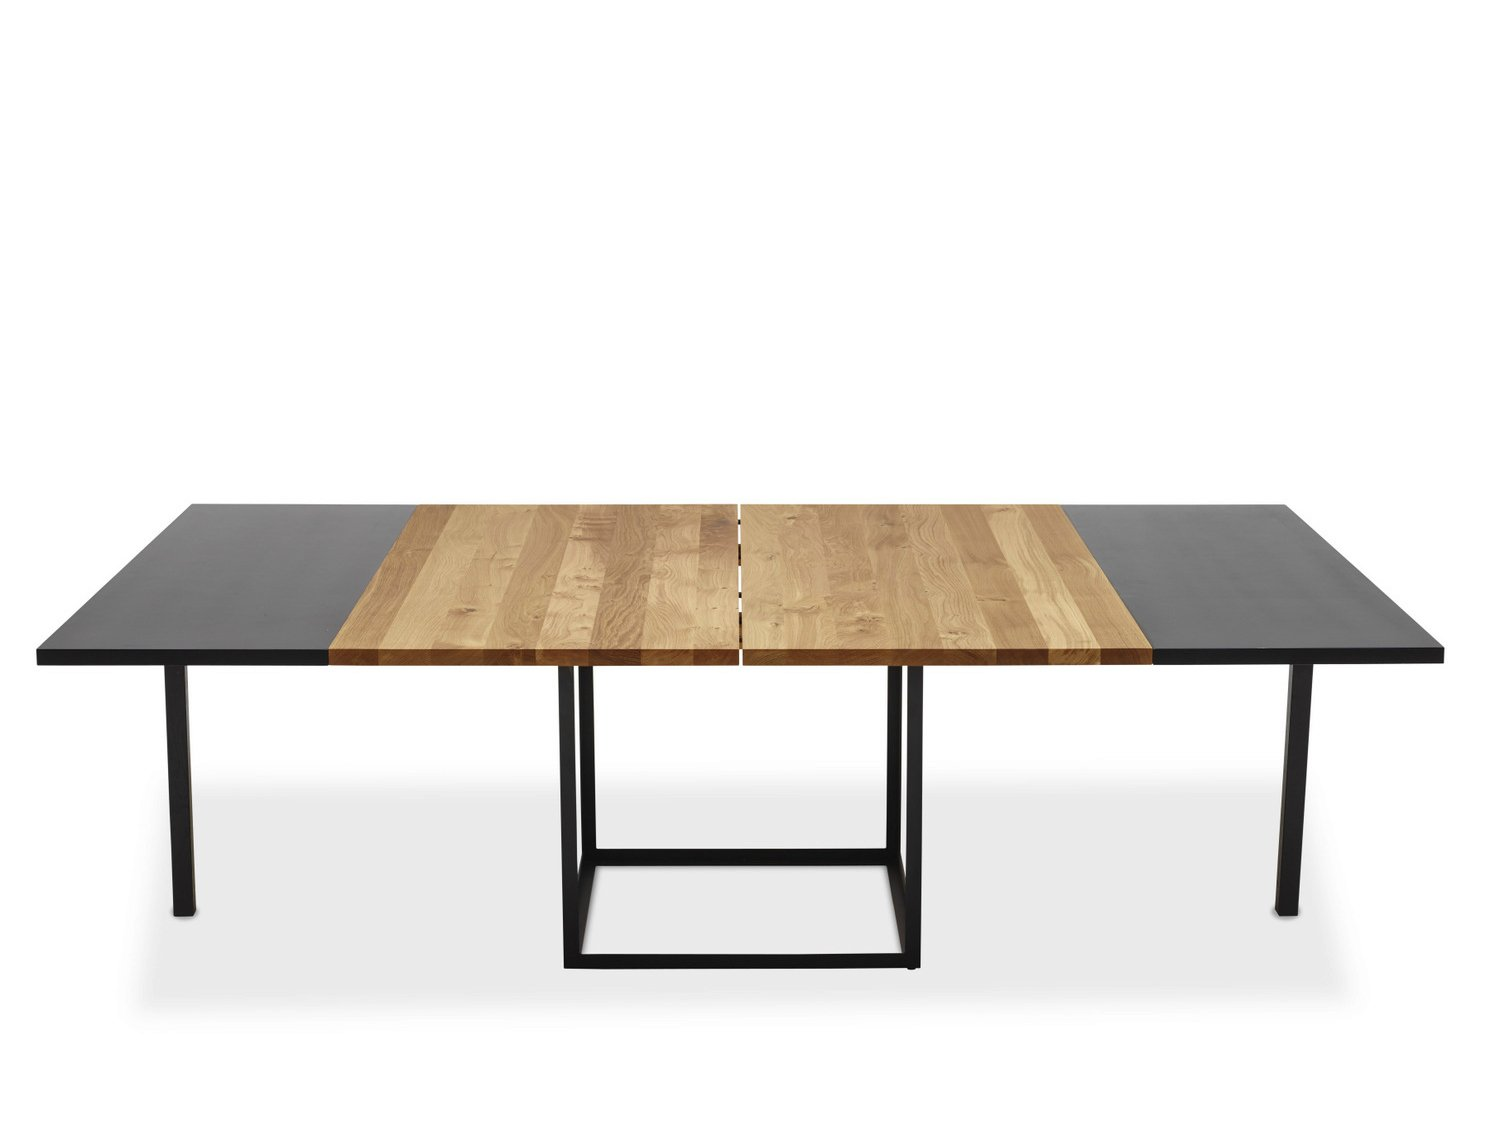 Jewel table table carr e by dk3 design s ren juul - Table carree 8 personnes avec rallonge ...